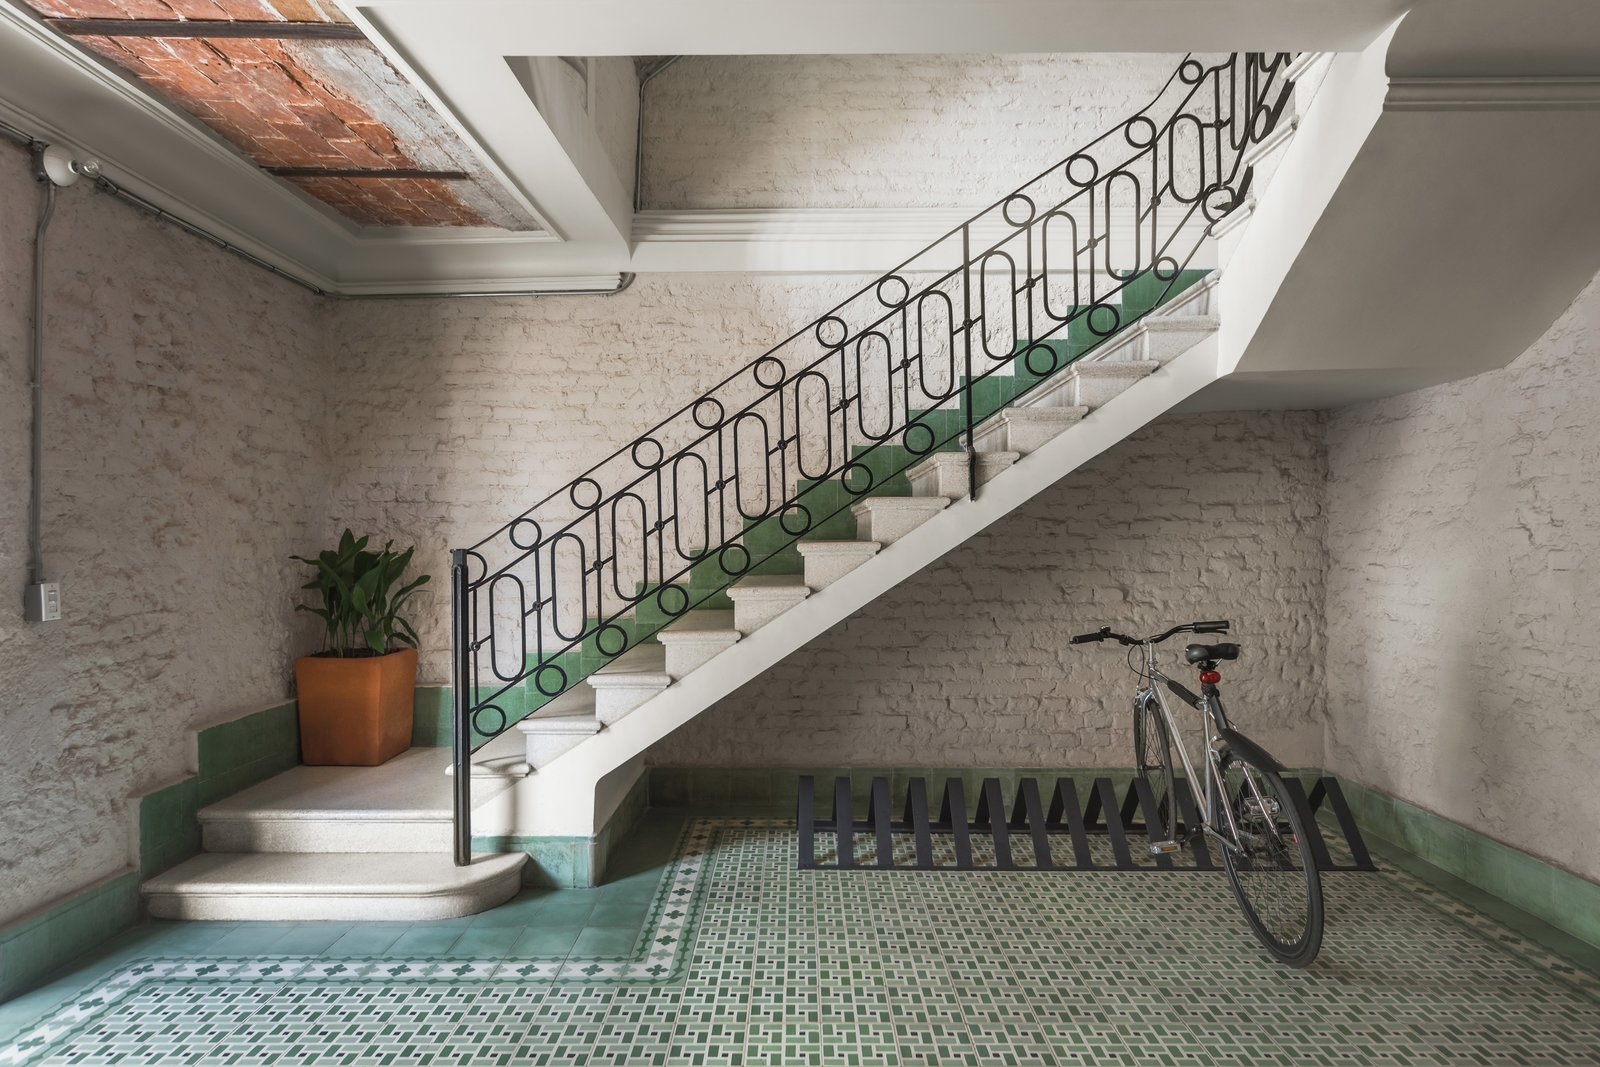 Original materials were recovered such as patterned azulejo floors, brick walls and railings